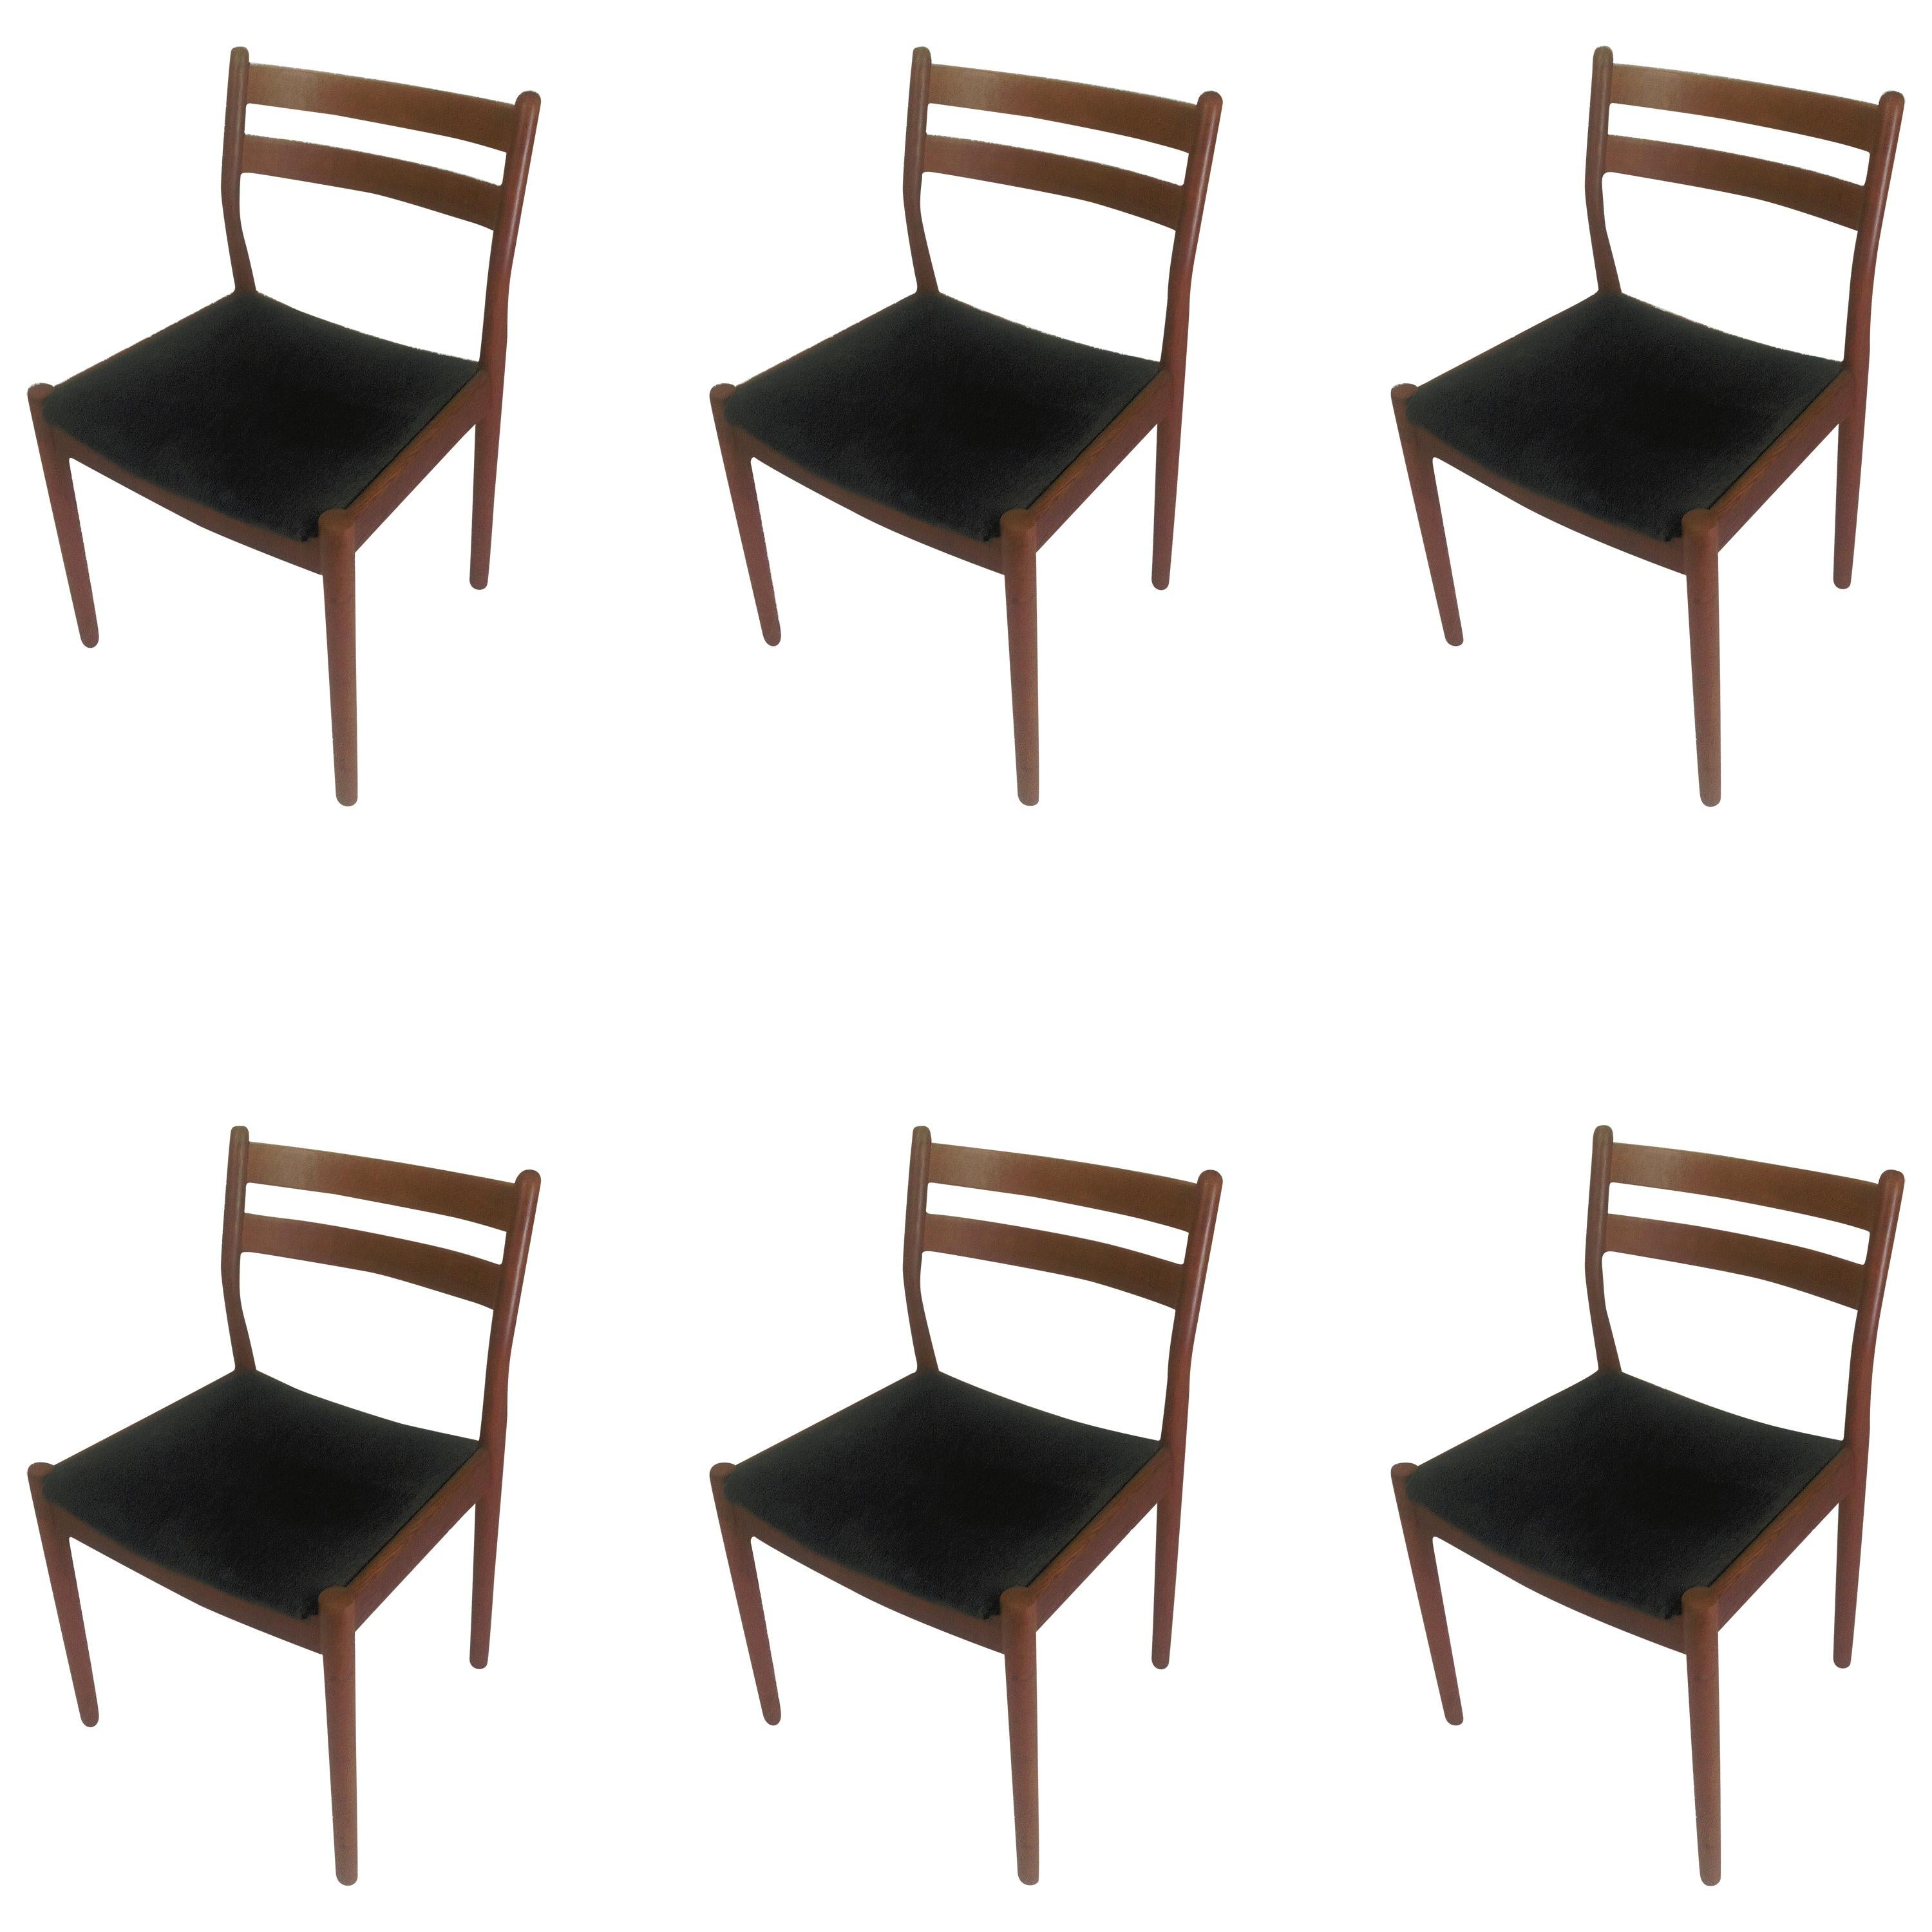 Set of Six Refinished Poul Volther Dining Chairs, Inc. Reupholstery